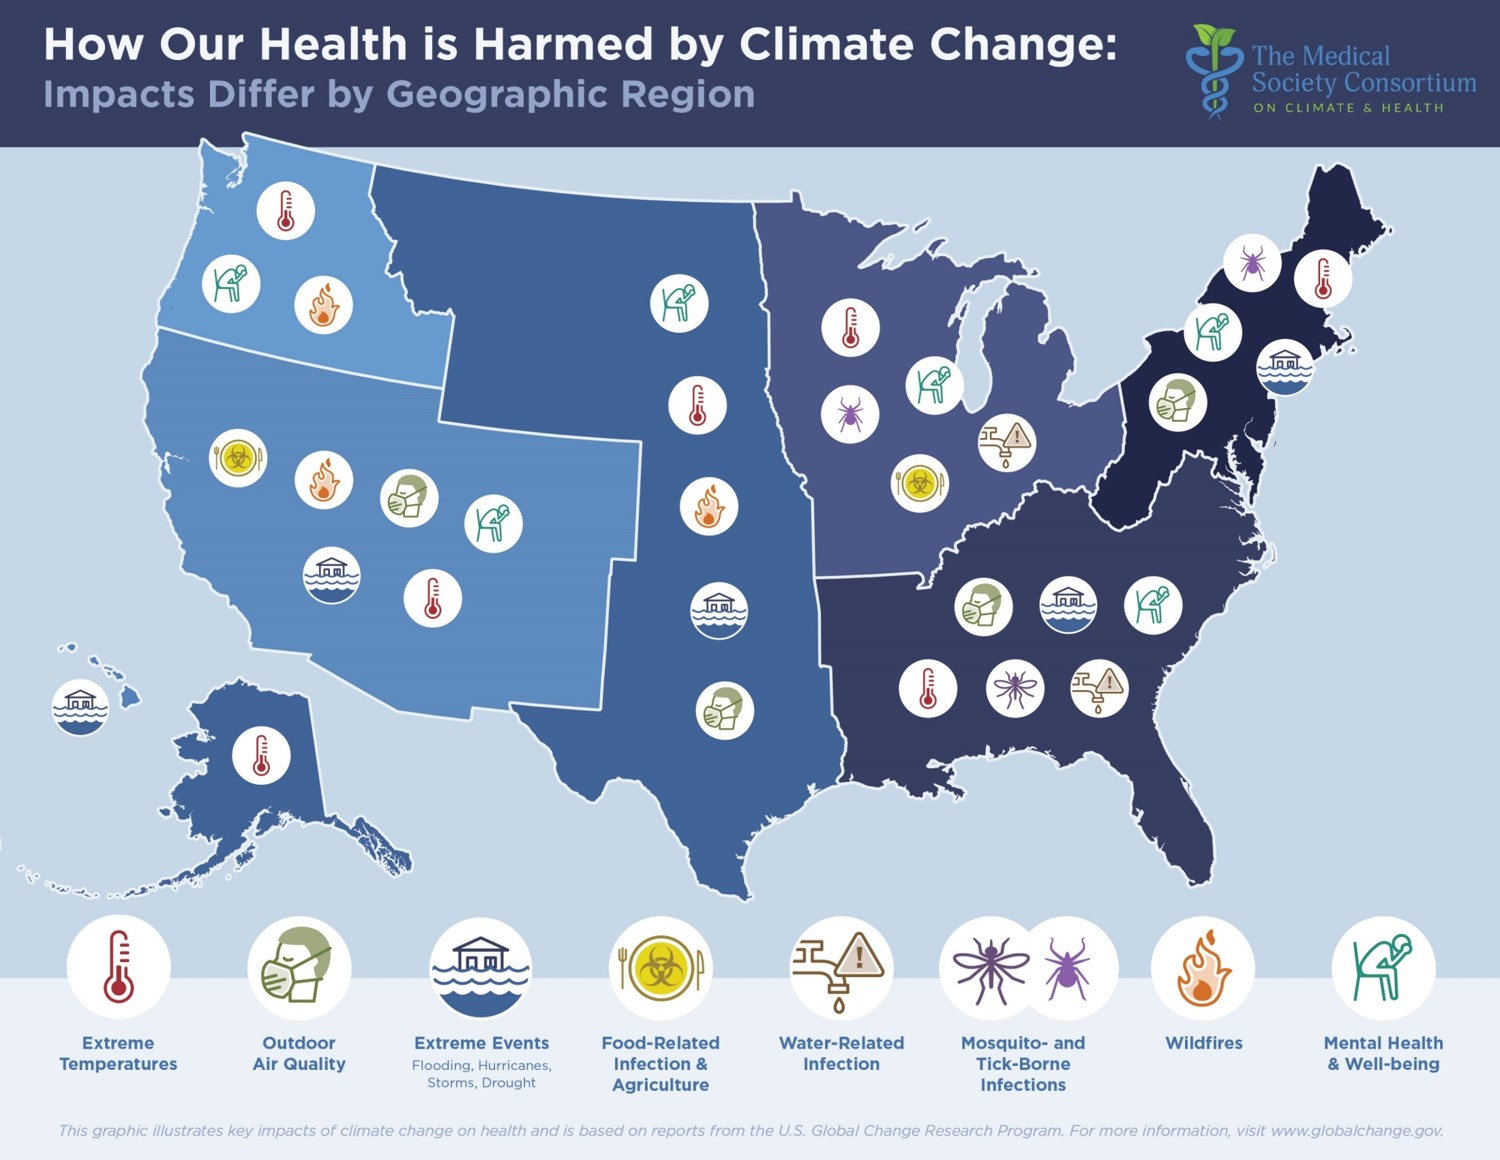 Map showing how our health is harmed by climate change